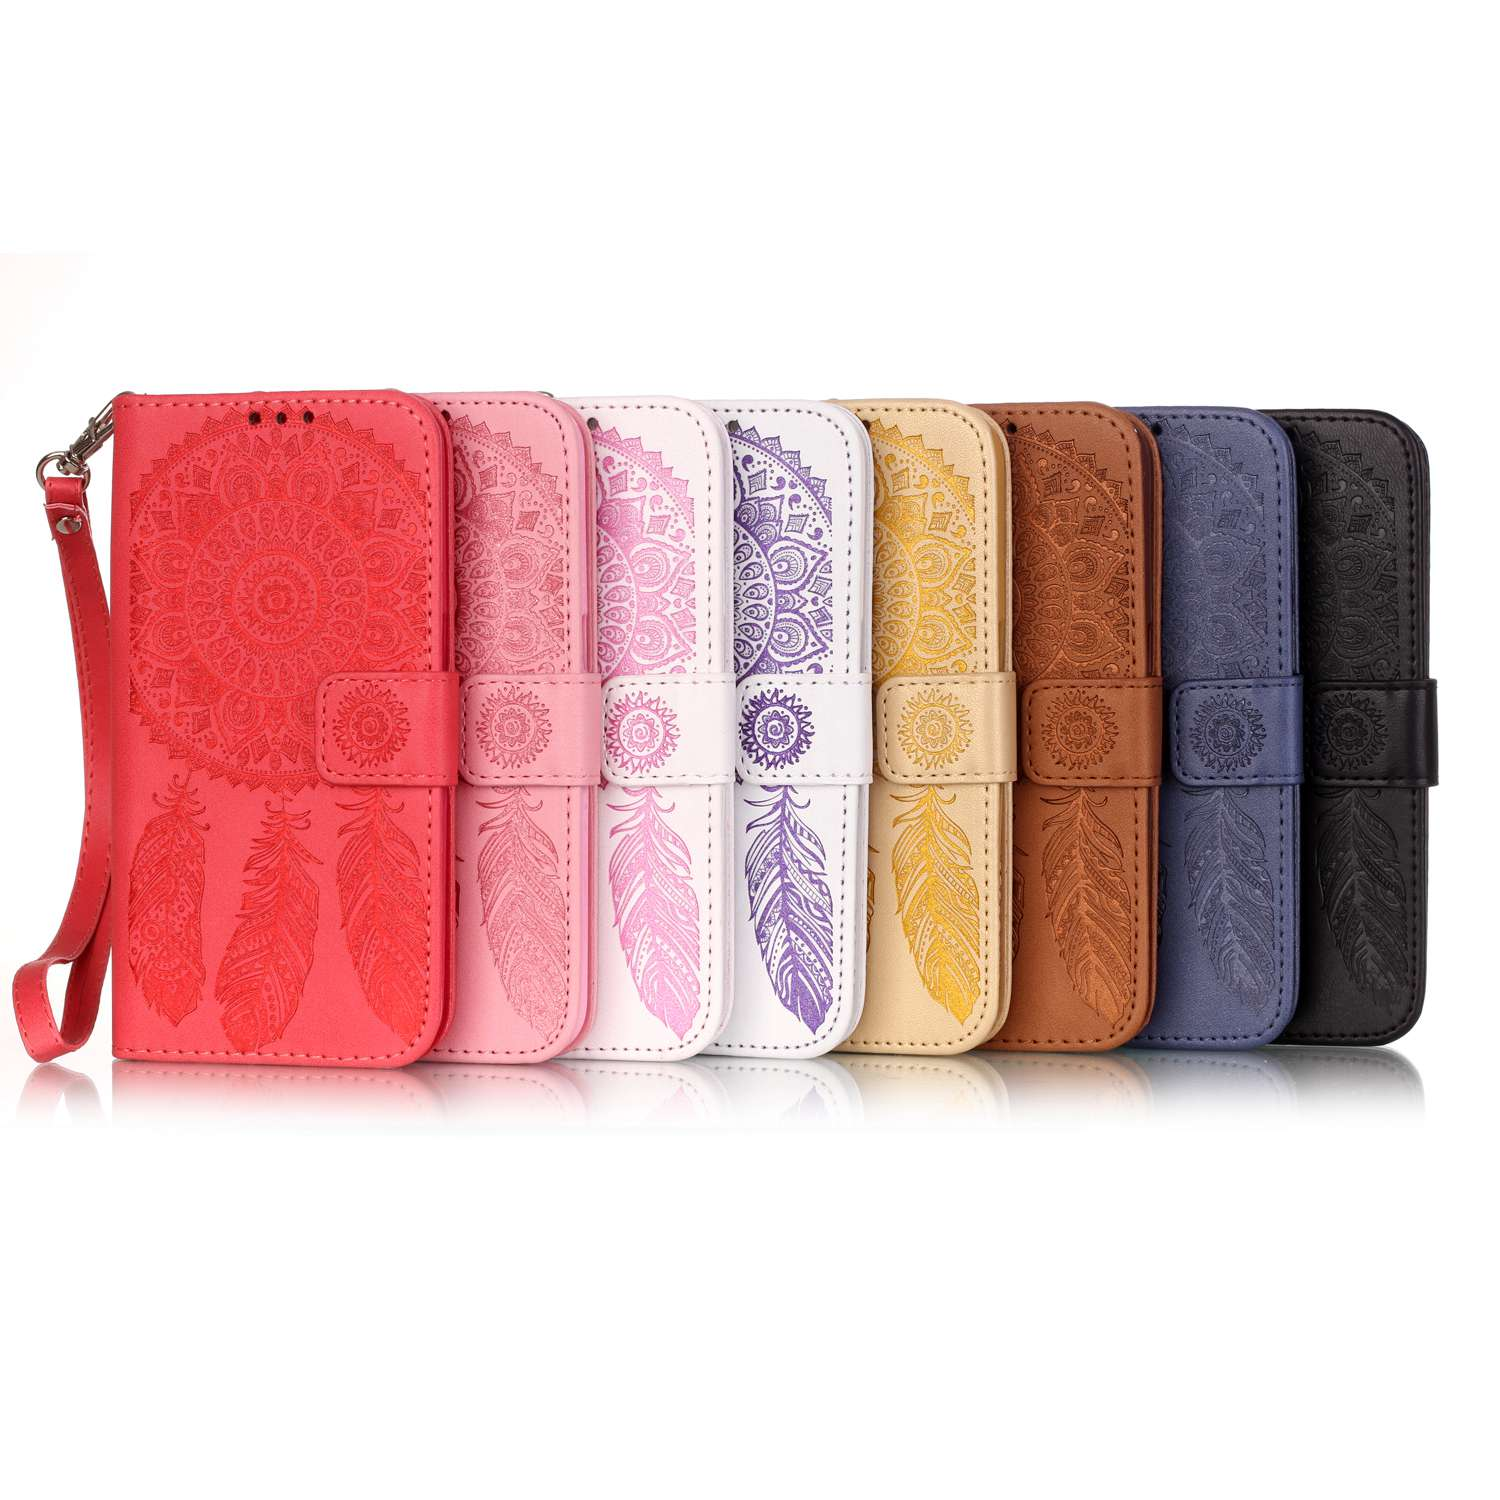 For LG G5 Case For LG K7 Cover Embossed Wind Chimes Wallet Flip Covers Mobile Phone Accessories Fundas Coque Leather BookCase(China (Mainland))